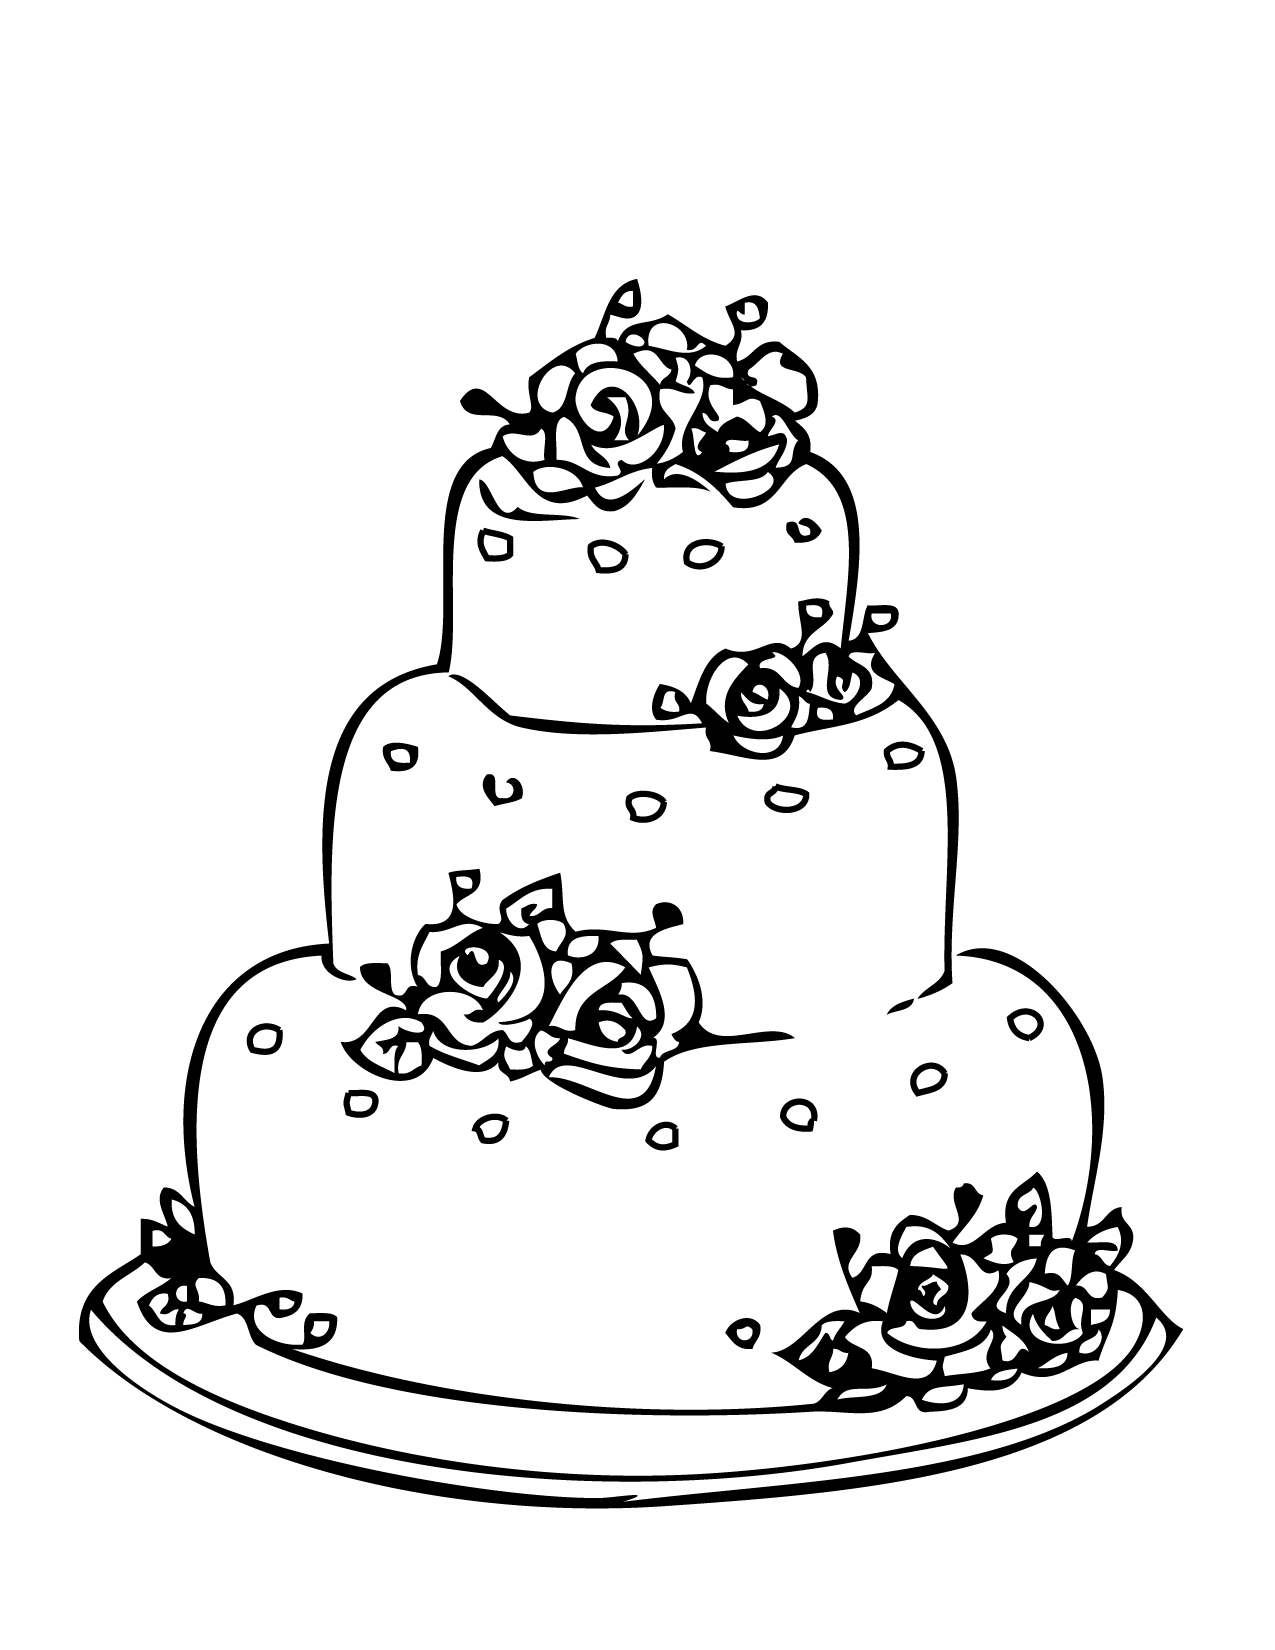 Best Wedding Cake Clip Art #17139.